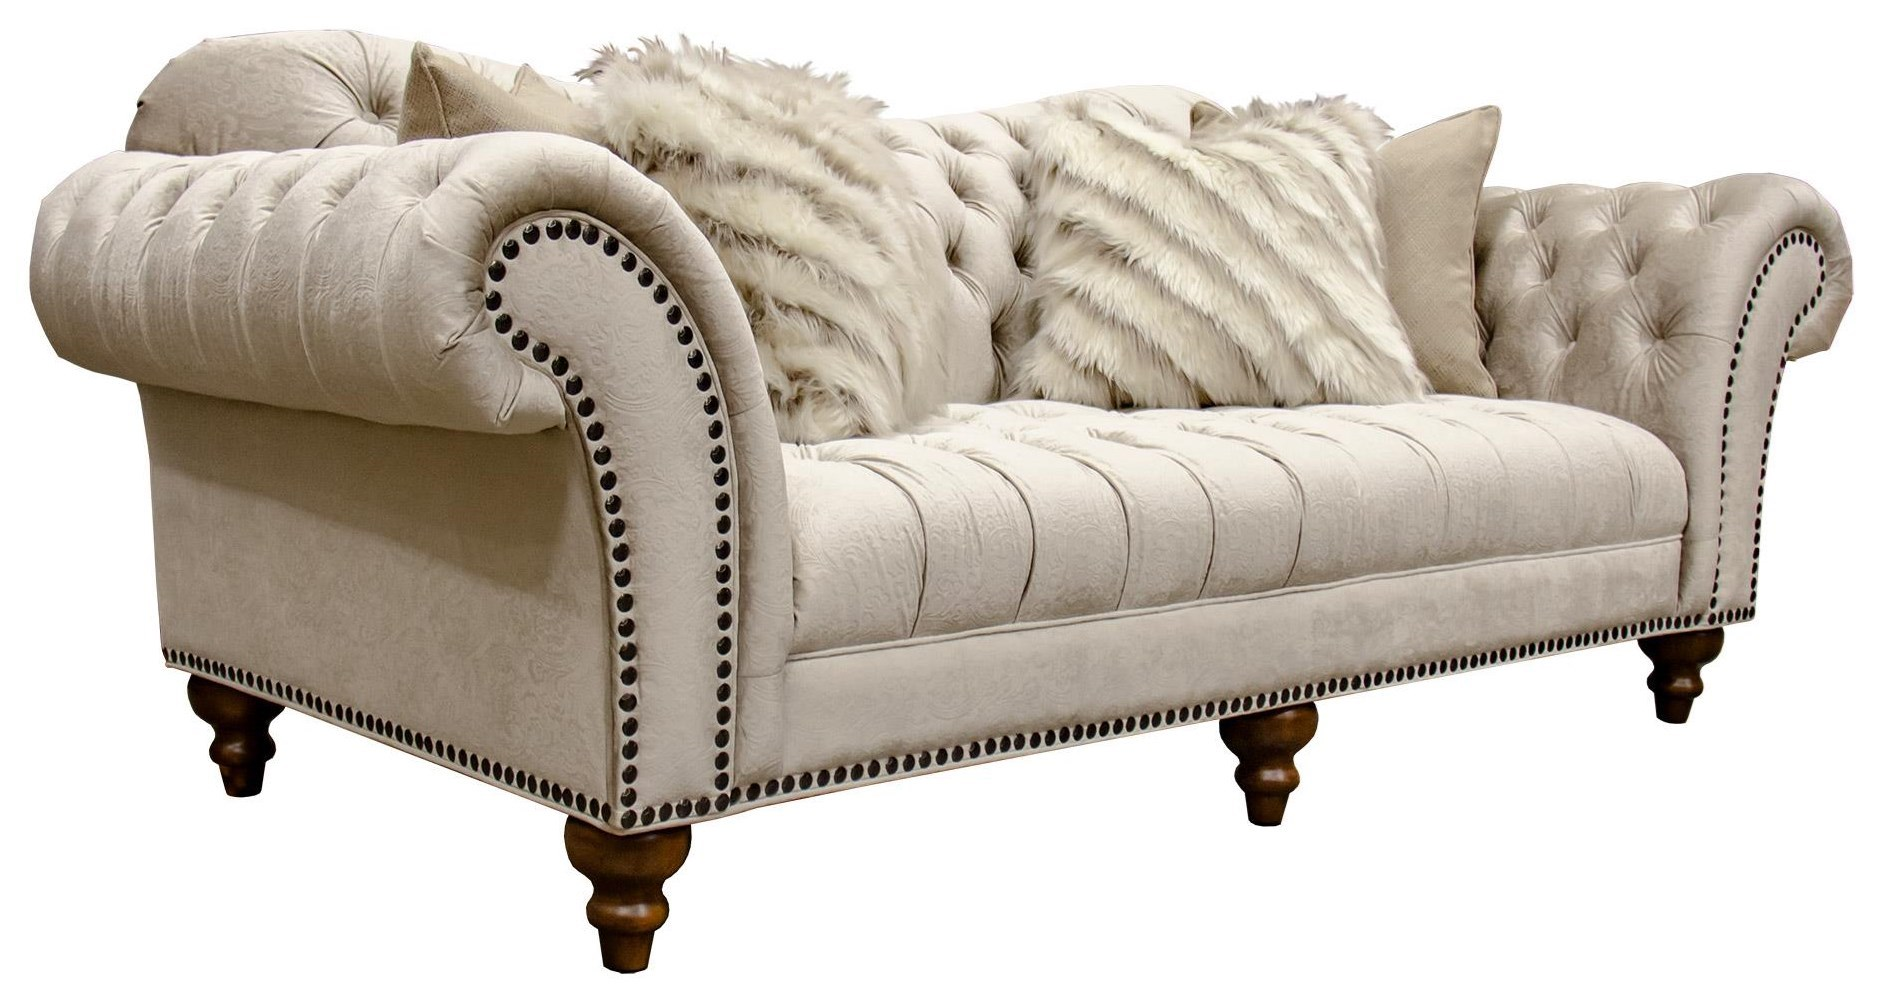 Sofa Outlet Paisley Lorraine Sand Paisley Tufted Sofa With Nailhead Trim By Aria Designs At Great American Home Store